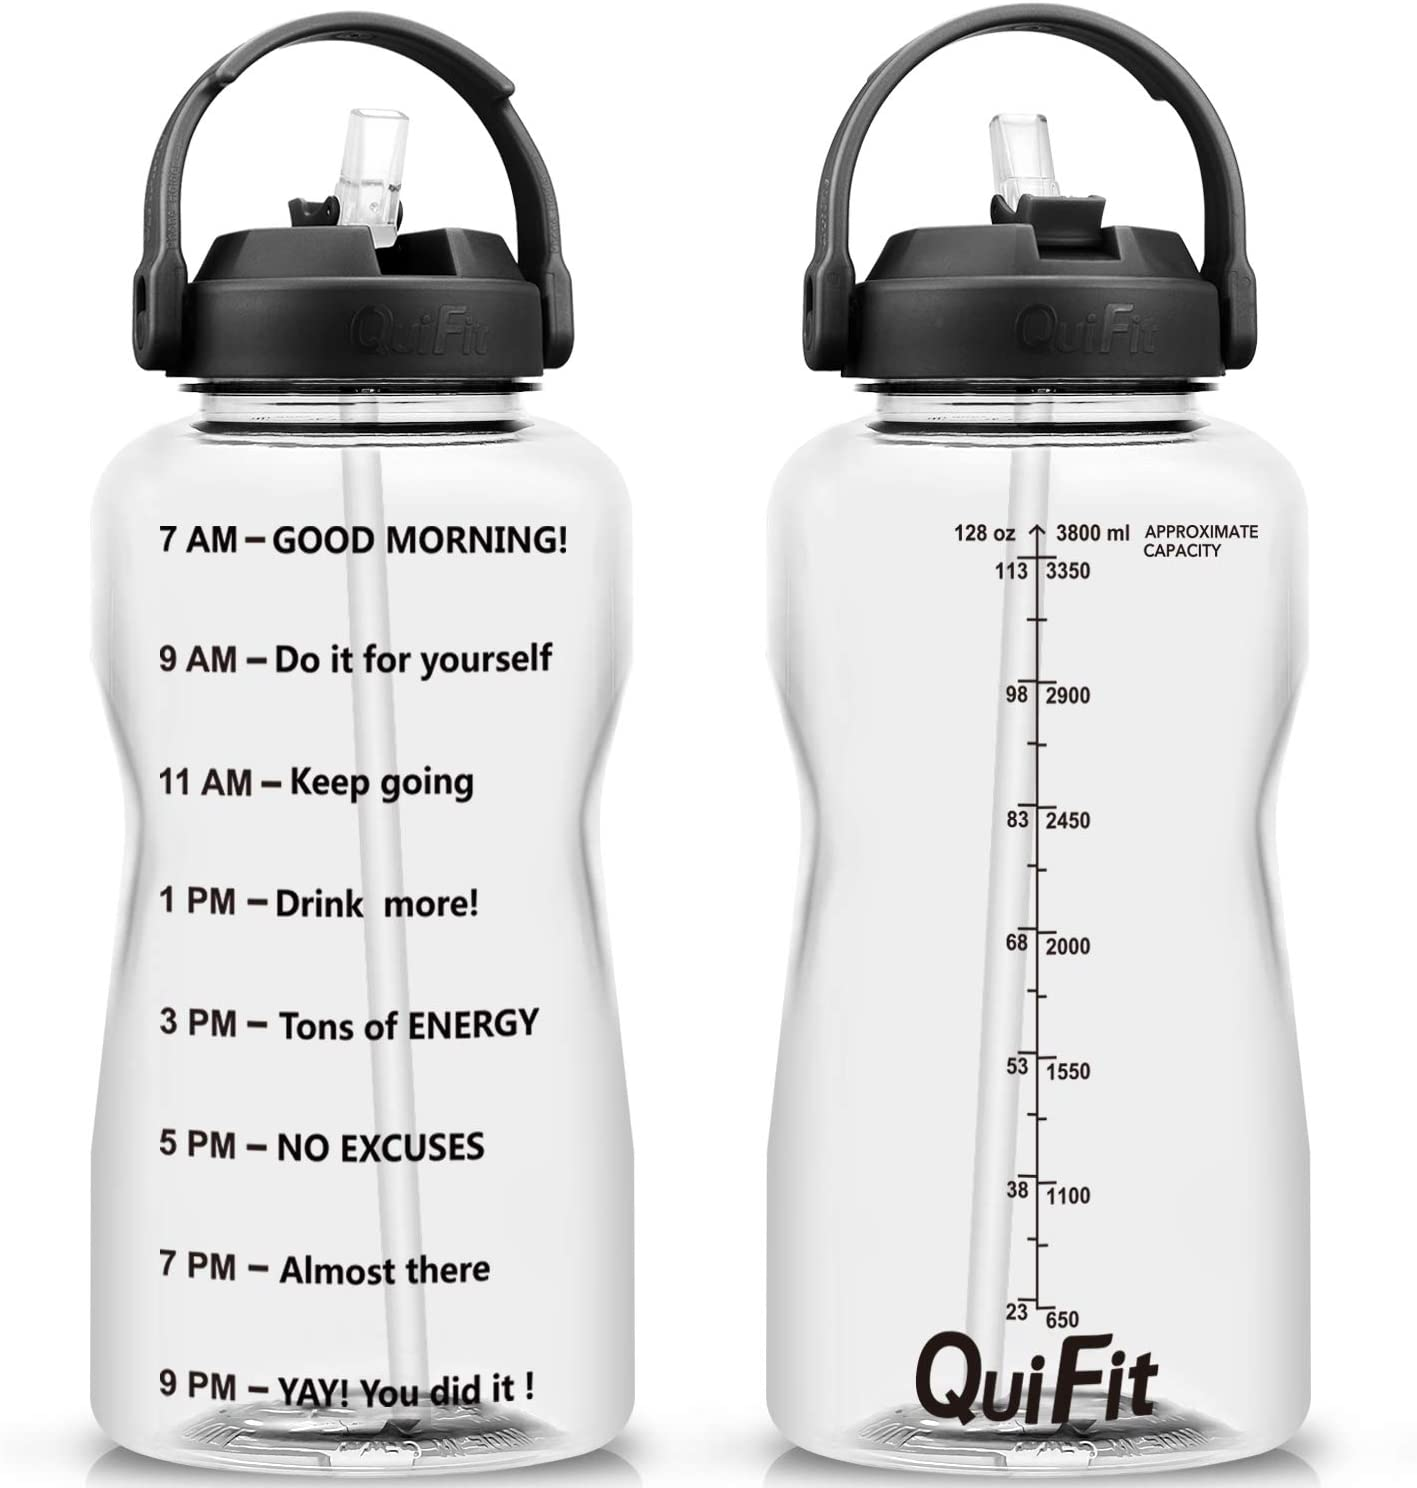 BuildLife Gallon Water Bottle Dishwasher Safe Wide Mouth Leakproof - BPA Free with Straw &Phone Holder Handle/Reminder to Drink More Daily